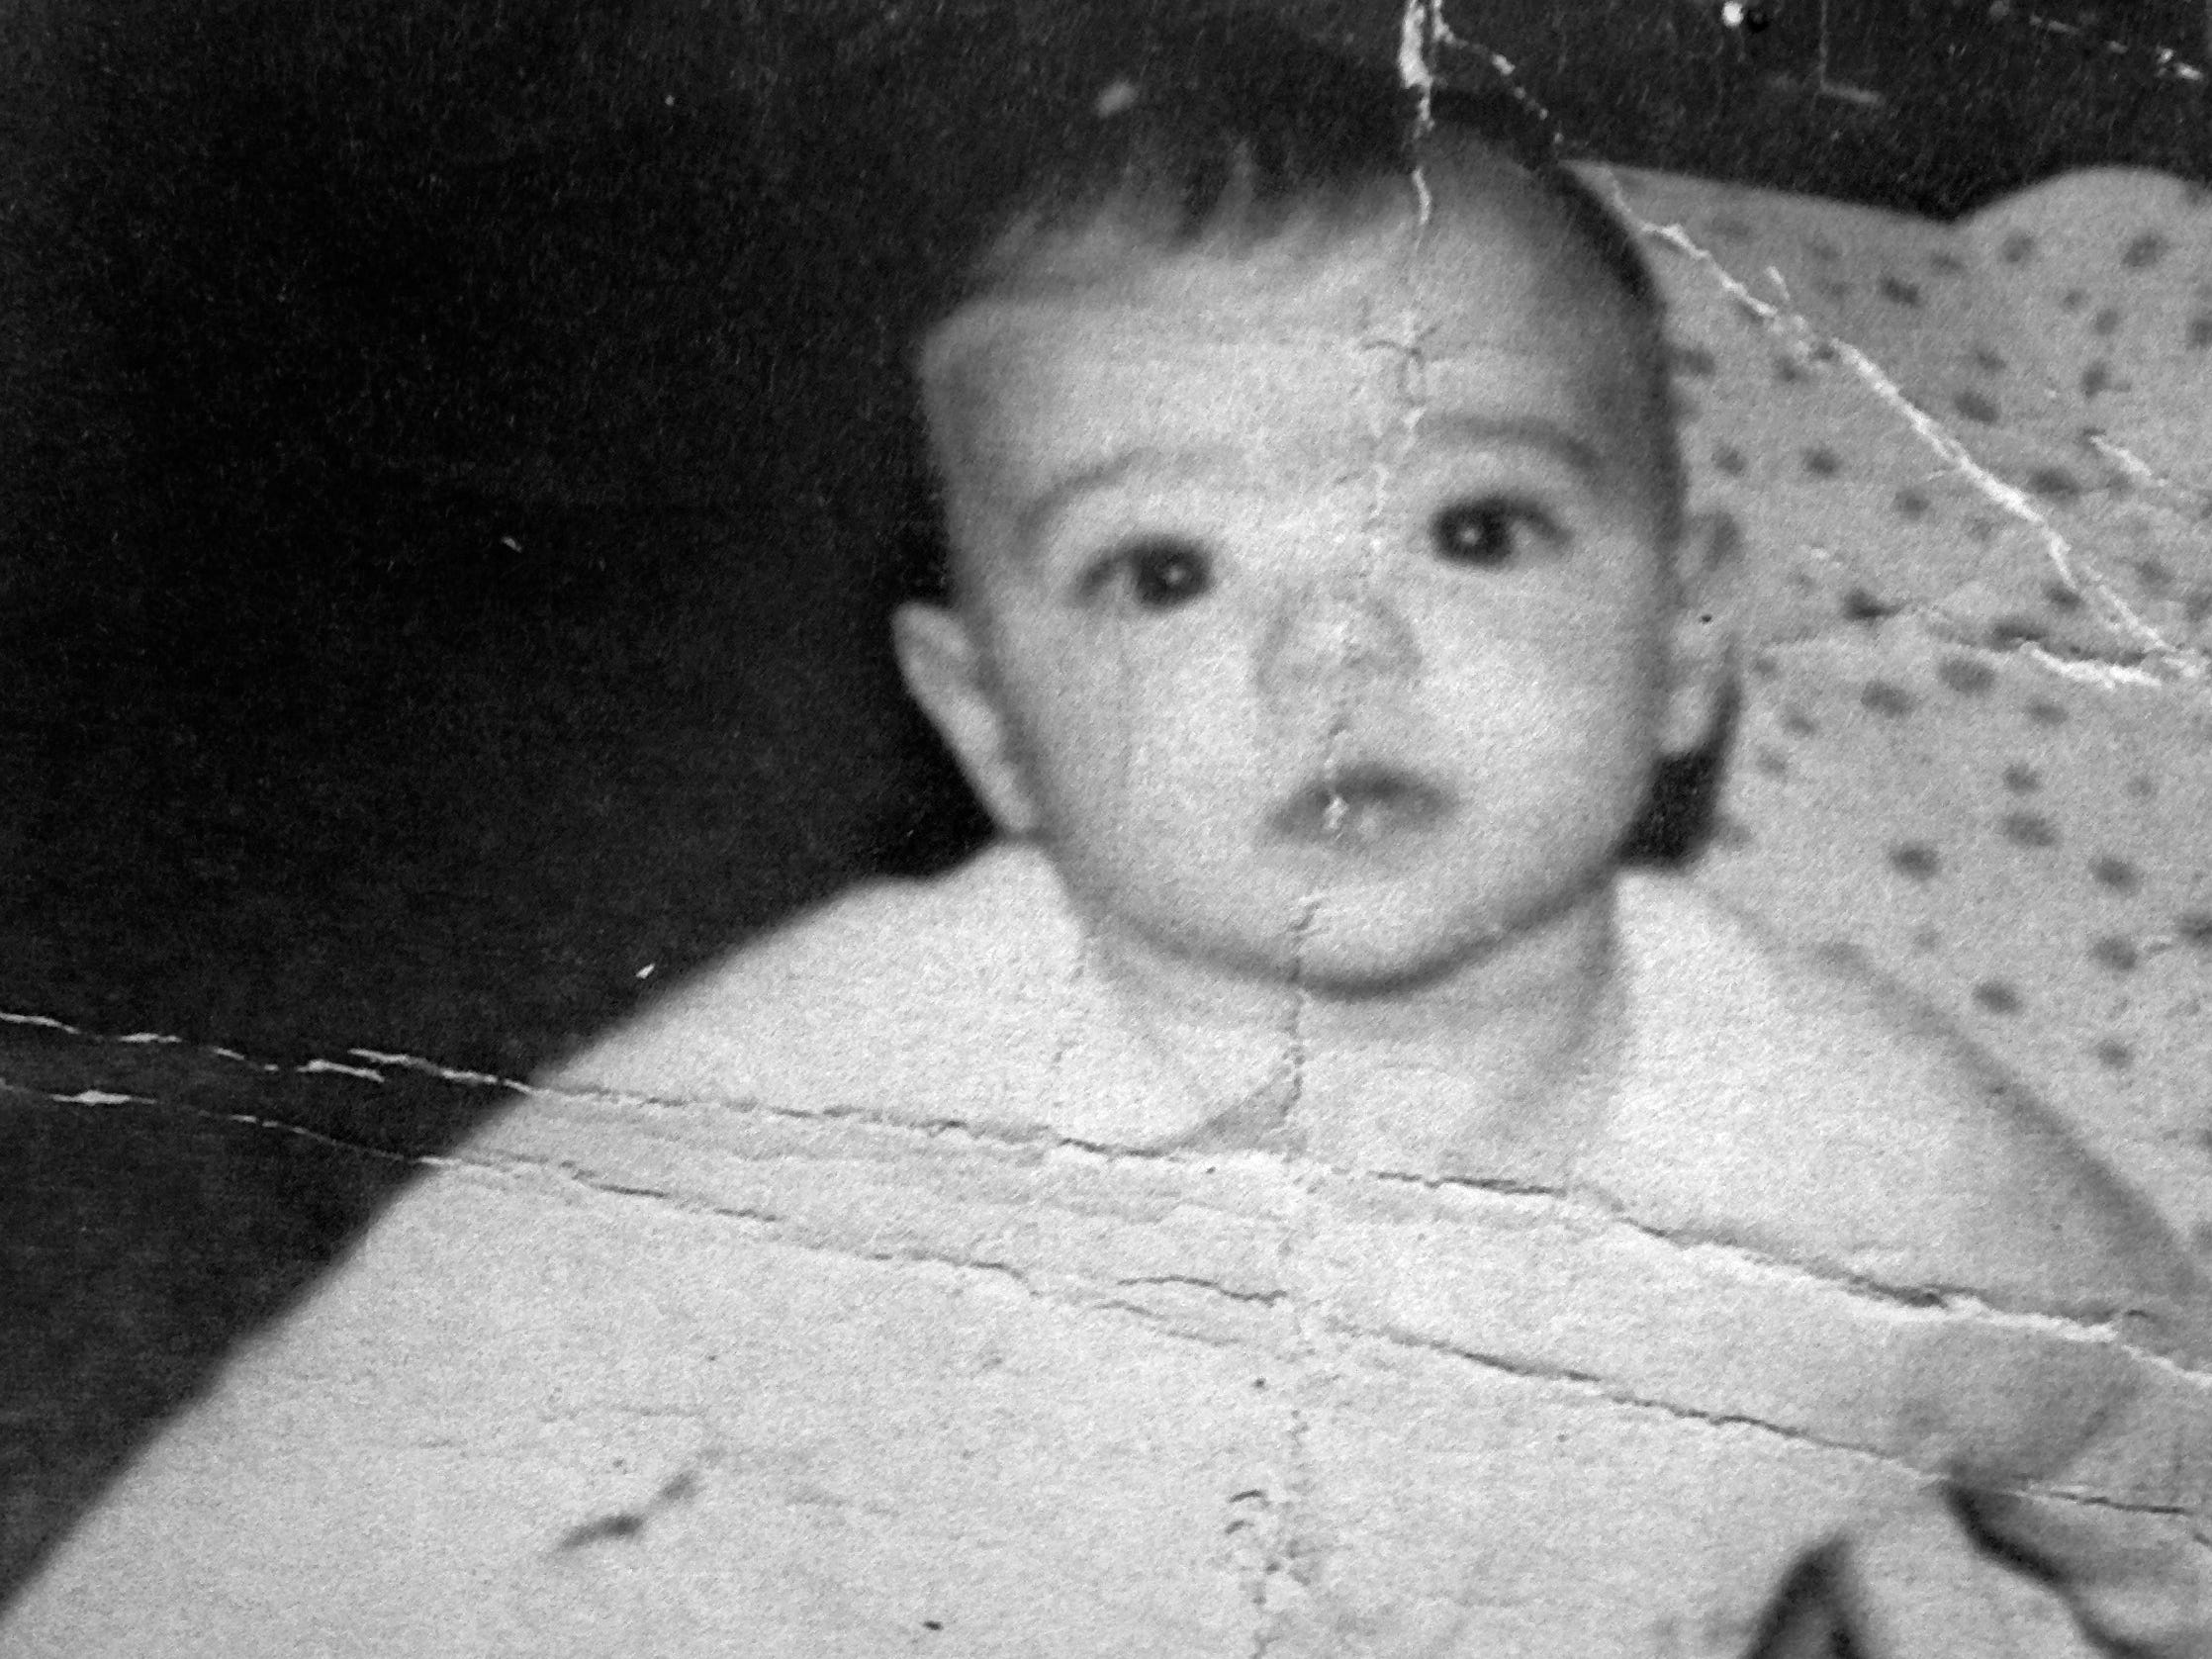 Mary Jane Millehan was just a few months old when this photo was taken in 1964. It's included in a book of snapshots she sent to Tom Peters, who in 2015 was determined to be her biological father.